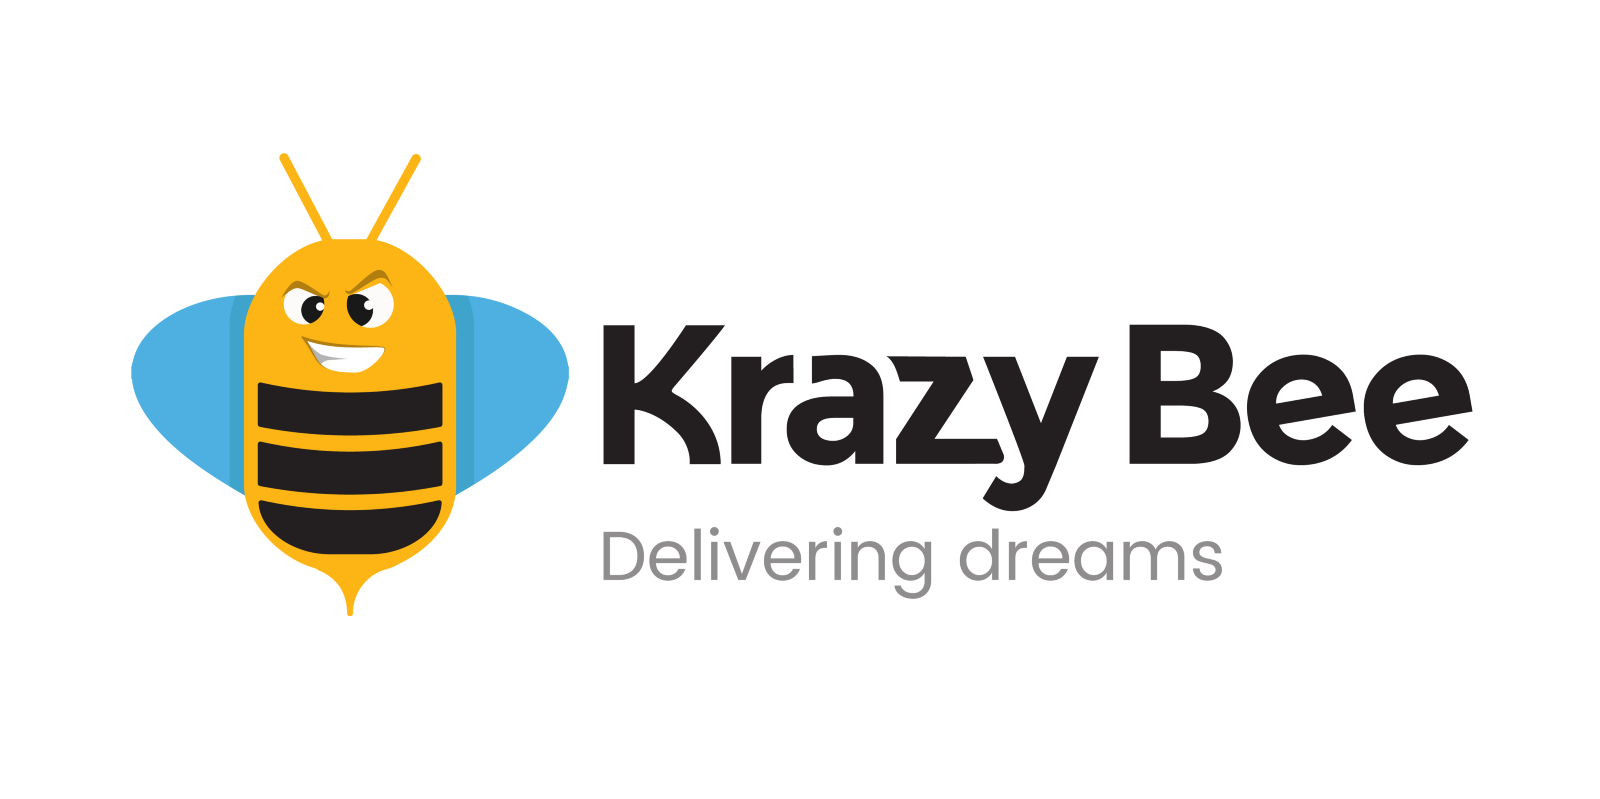 Krazy Bee Xiaomi Investition